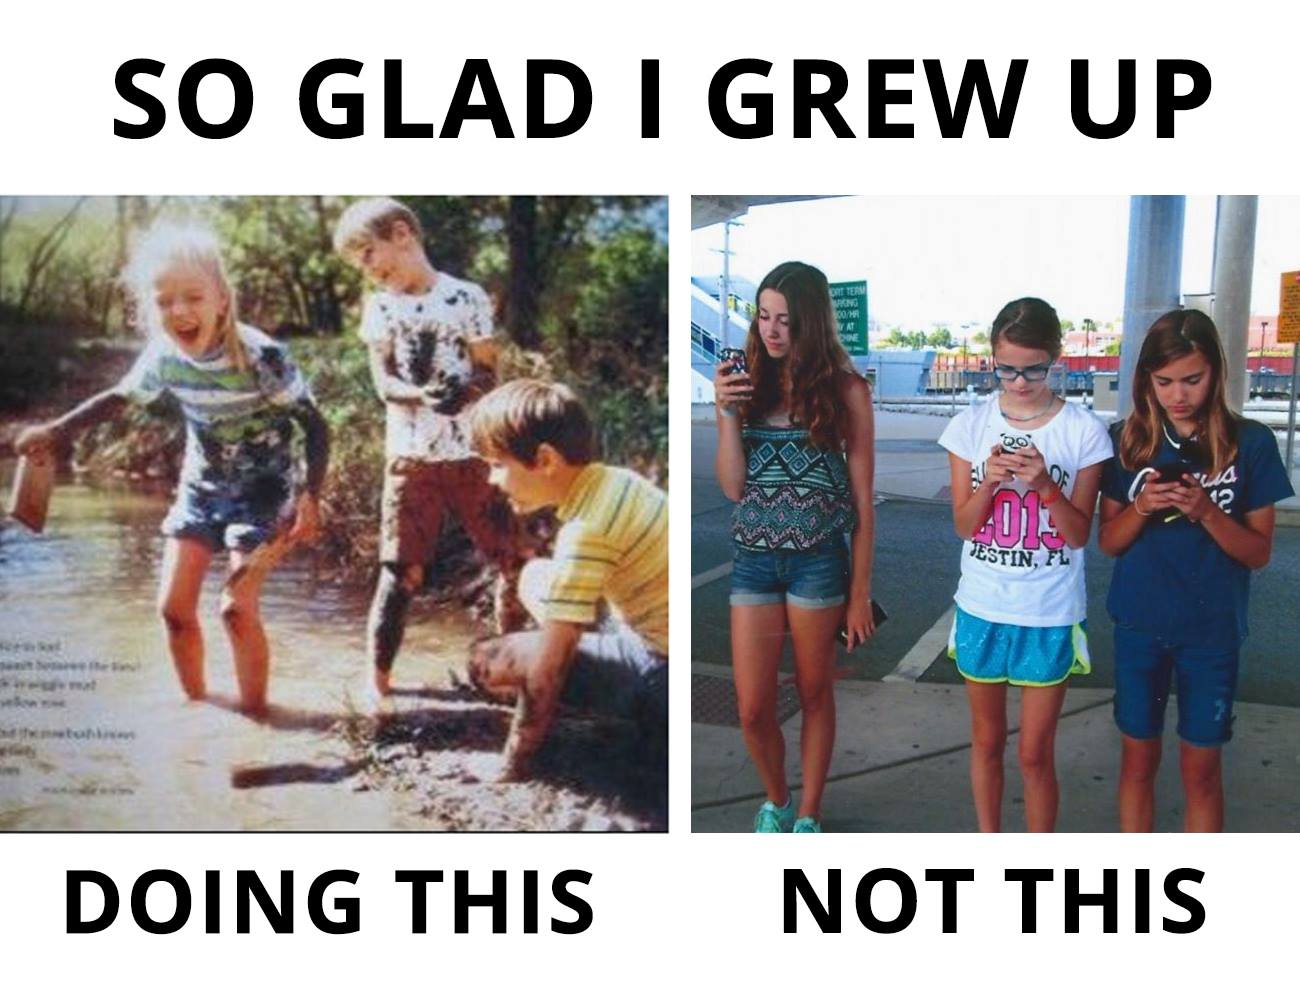 growing-up-meme.jpg